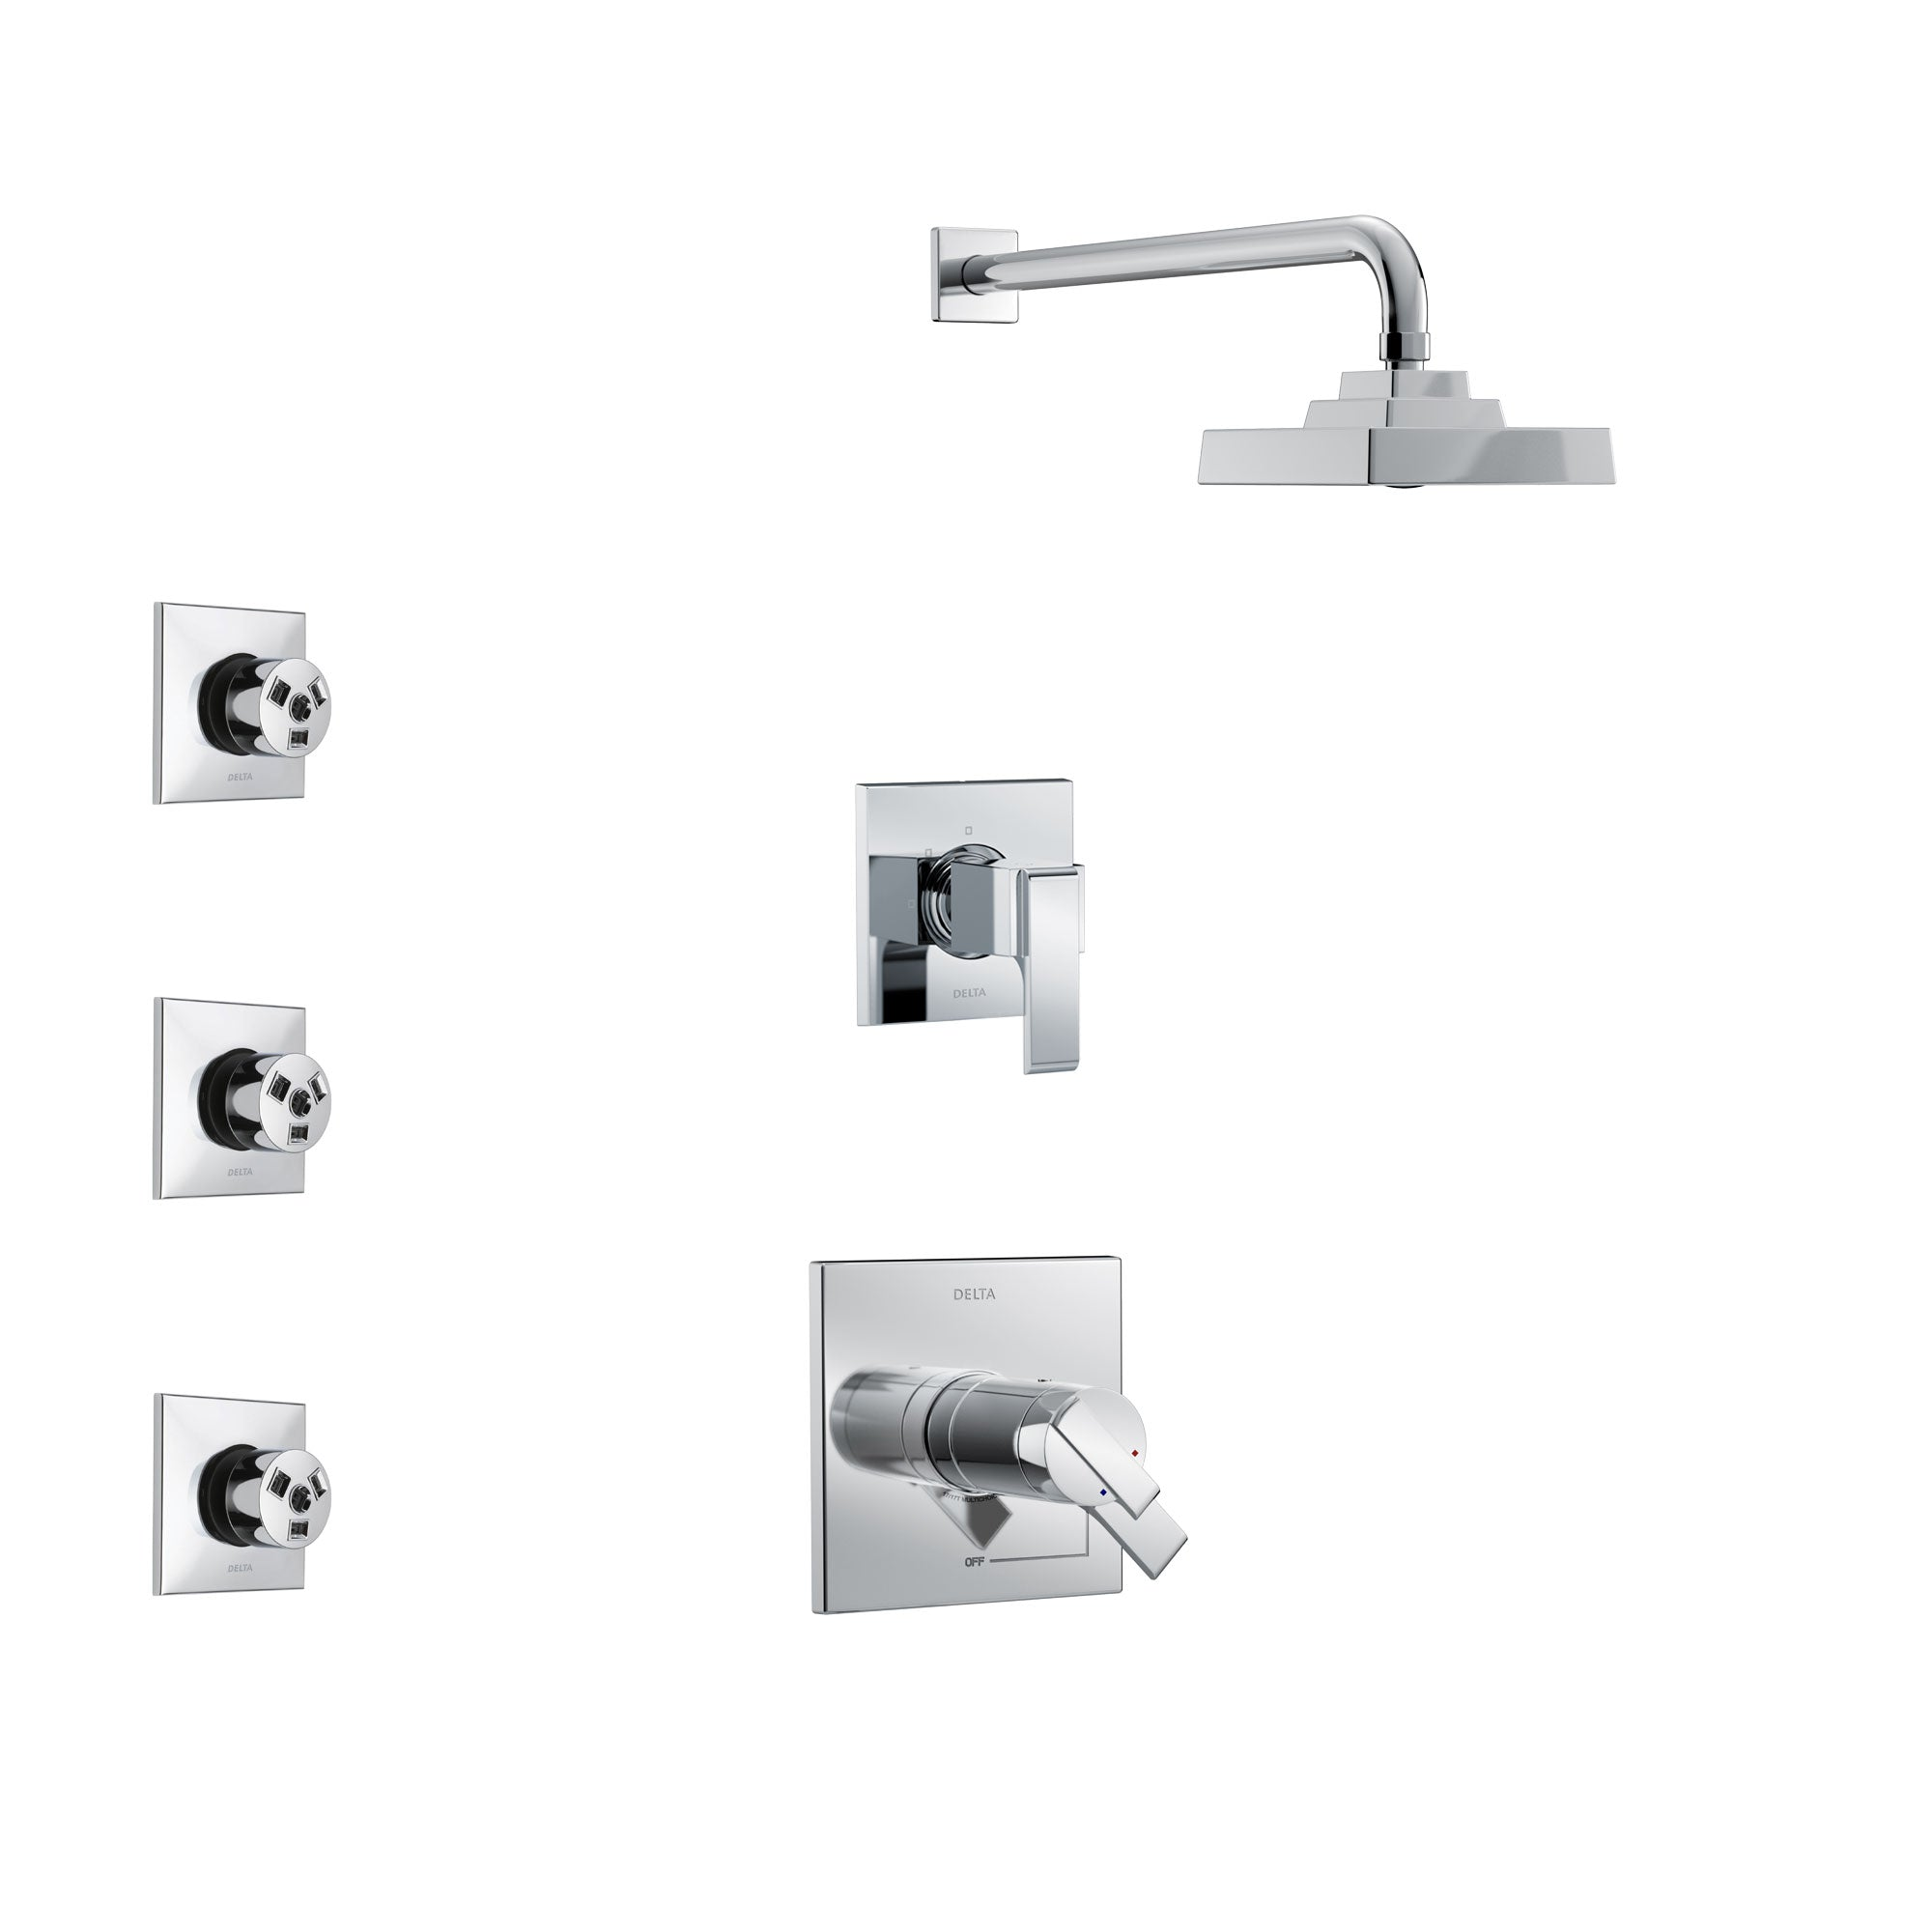 Delta Ara Chrome Finish Shower System with Dual Thermostatic Control Handle, 3-Setting Diverter, Showerhead, and 3 Body Sprays SS17T26712